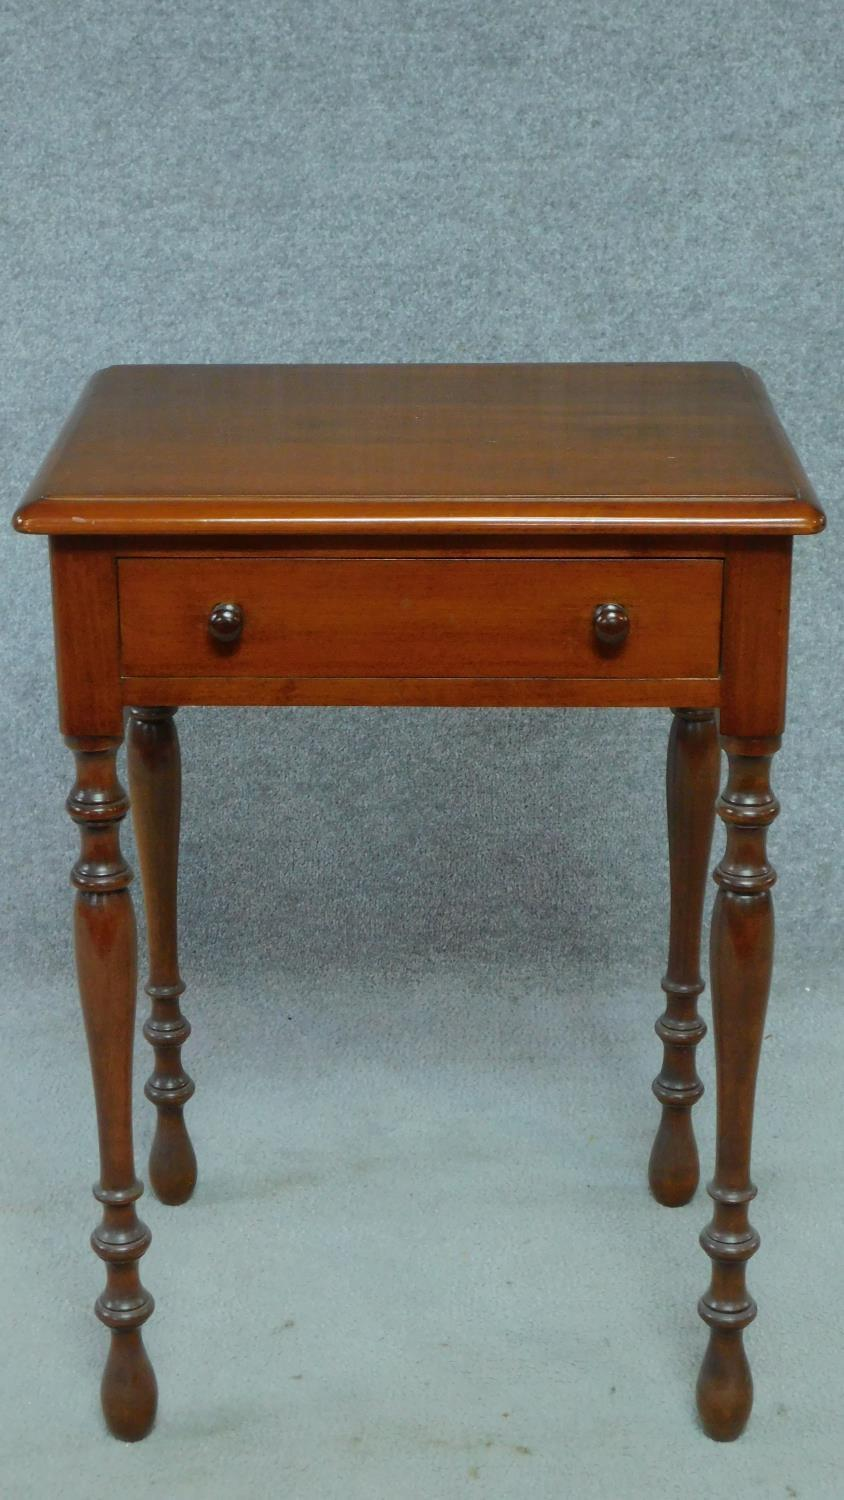 A late 19th century mahogany bedside table with frieze drawer, raised on turned tapering supports. - Image 2 of 5